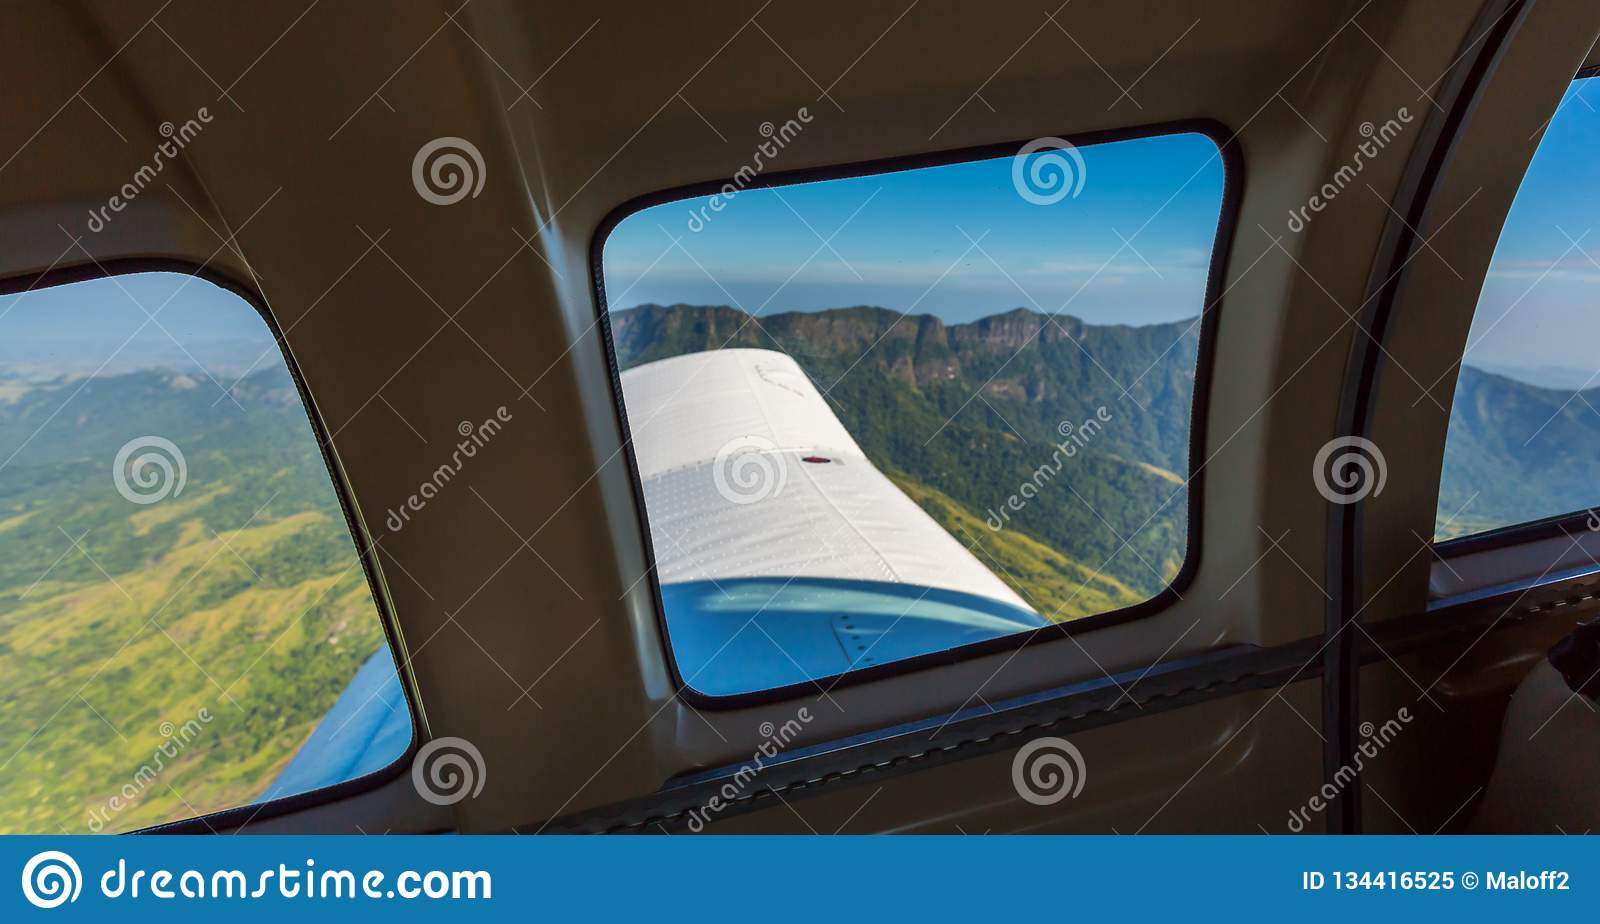 Stunning view of mountain range from a window of a small airplane during take off. Air travel in Fiji, Melanesia, Oceania.